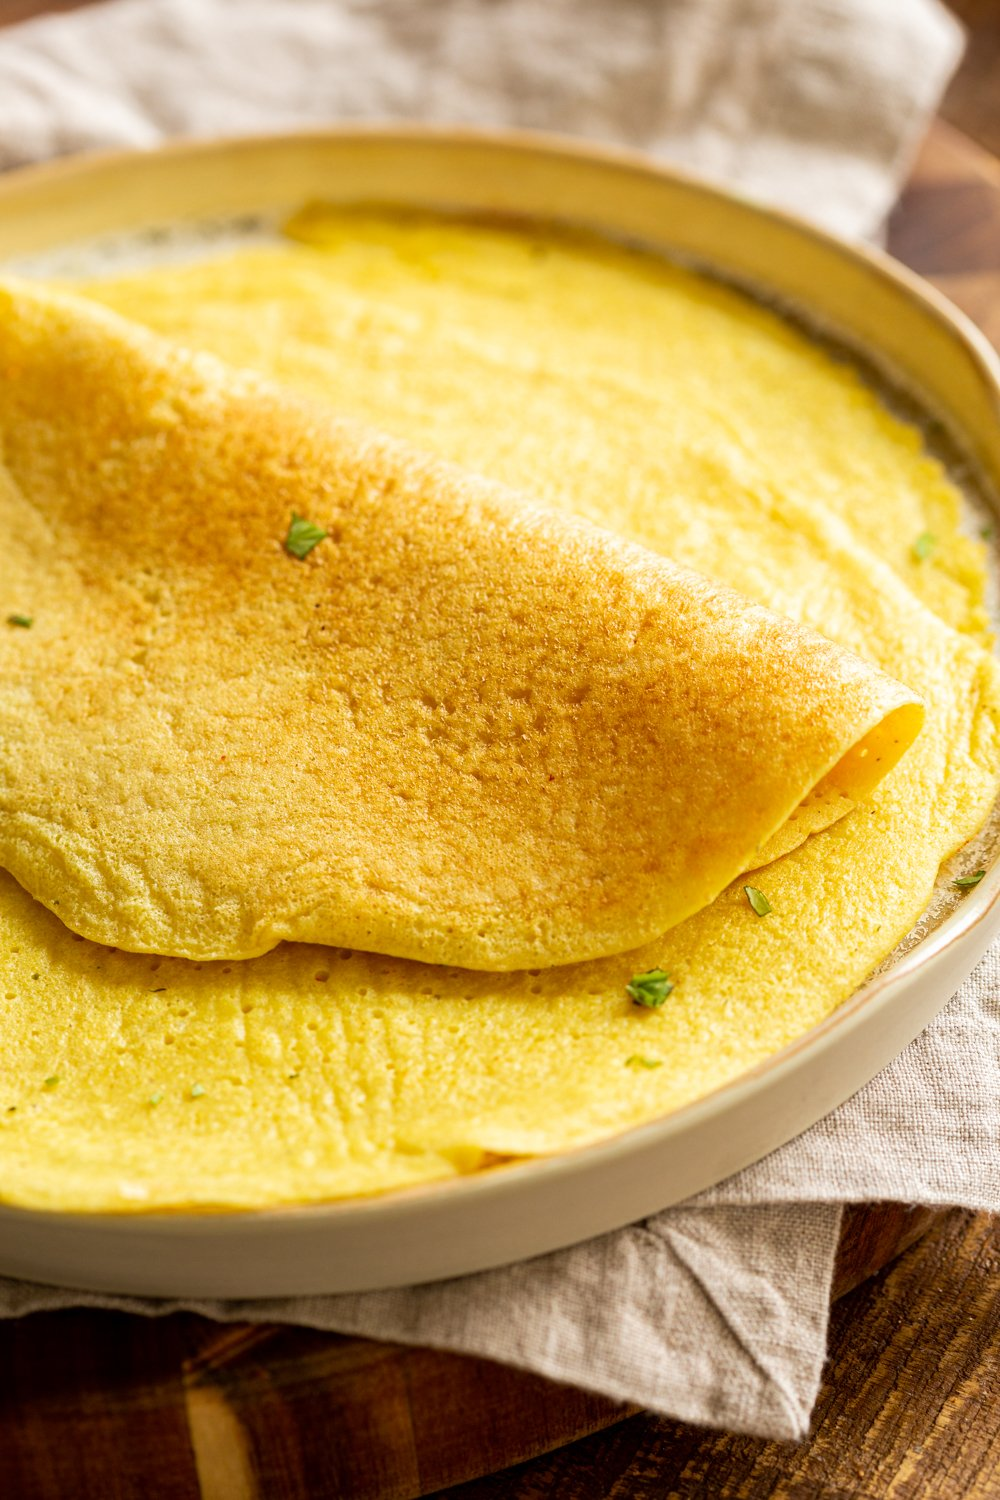 Plain Vegan Omelet made with Mung Beans on a white plate